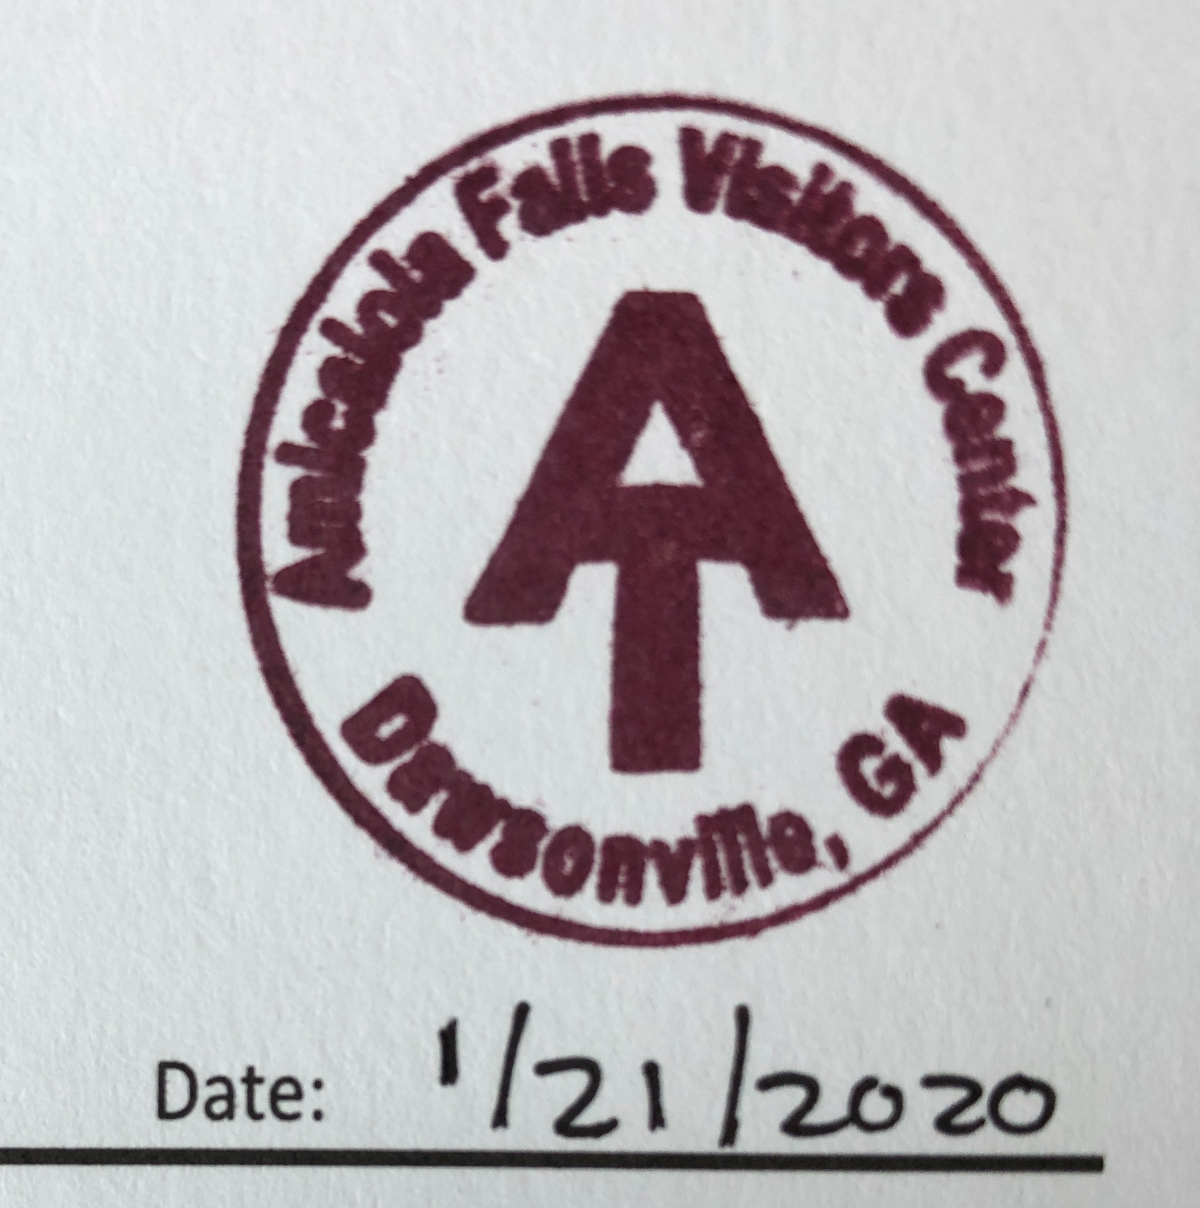 My AT trail passport stamp